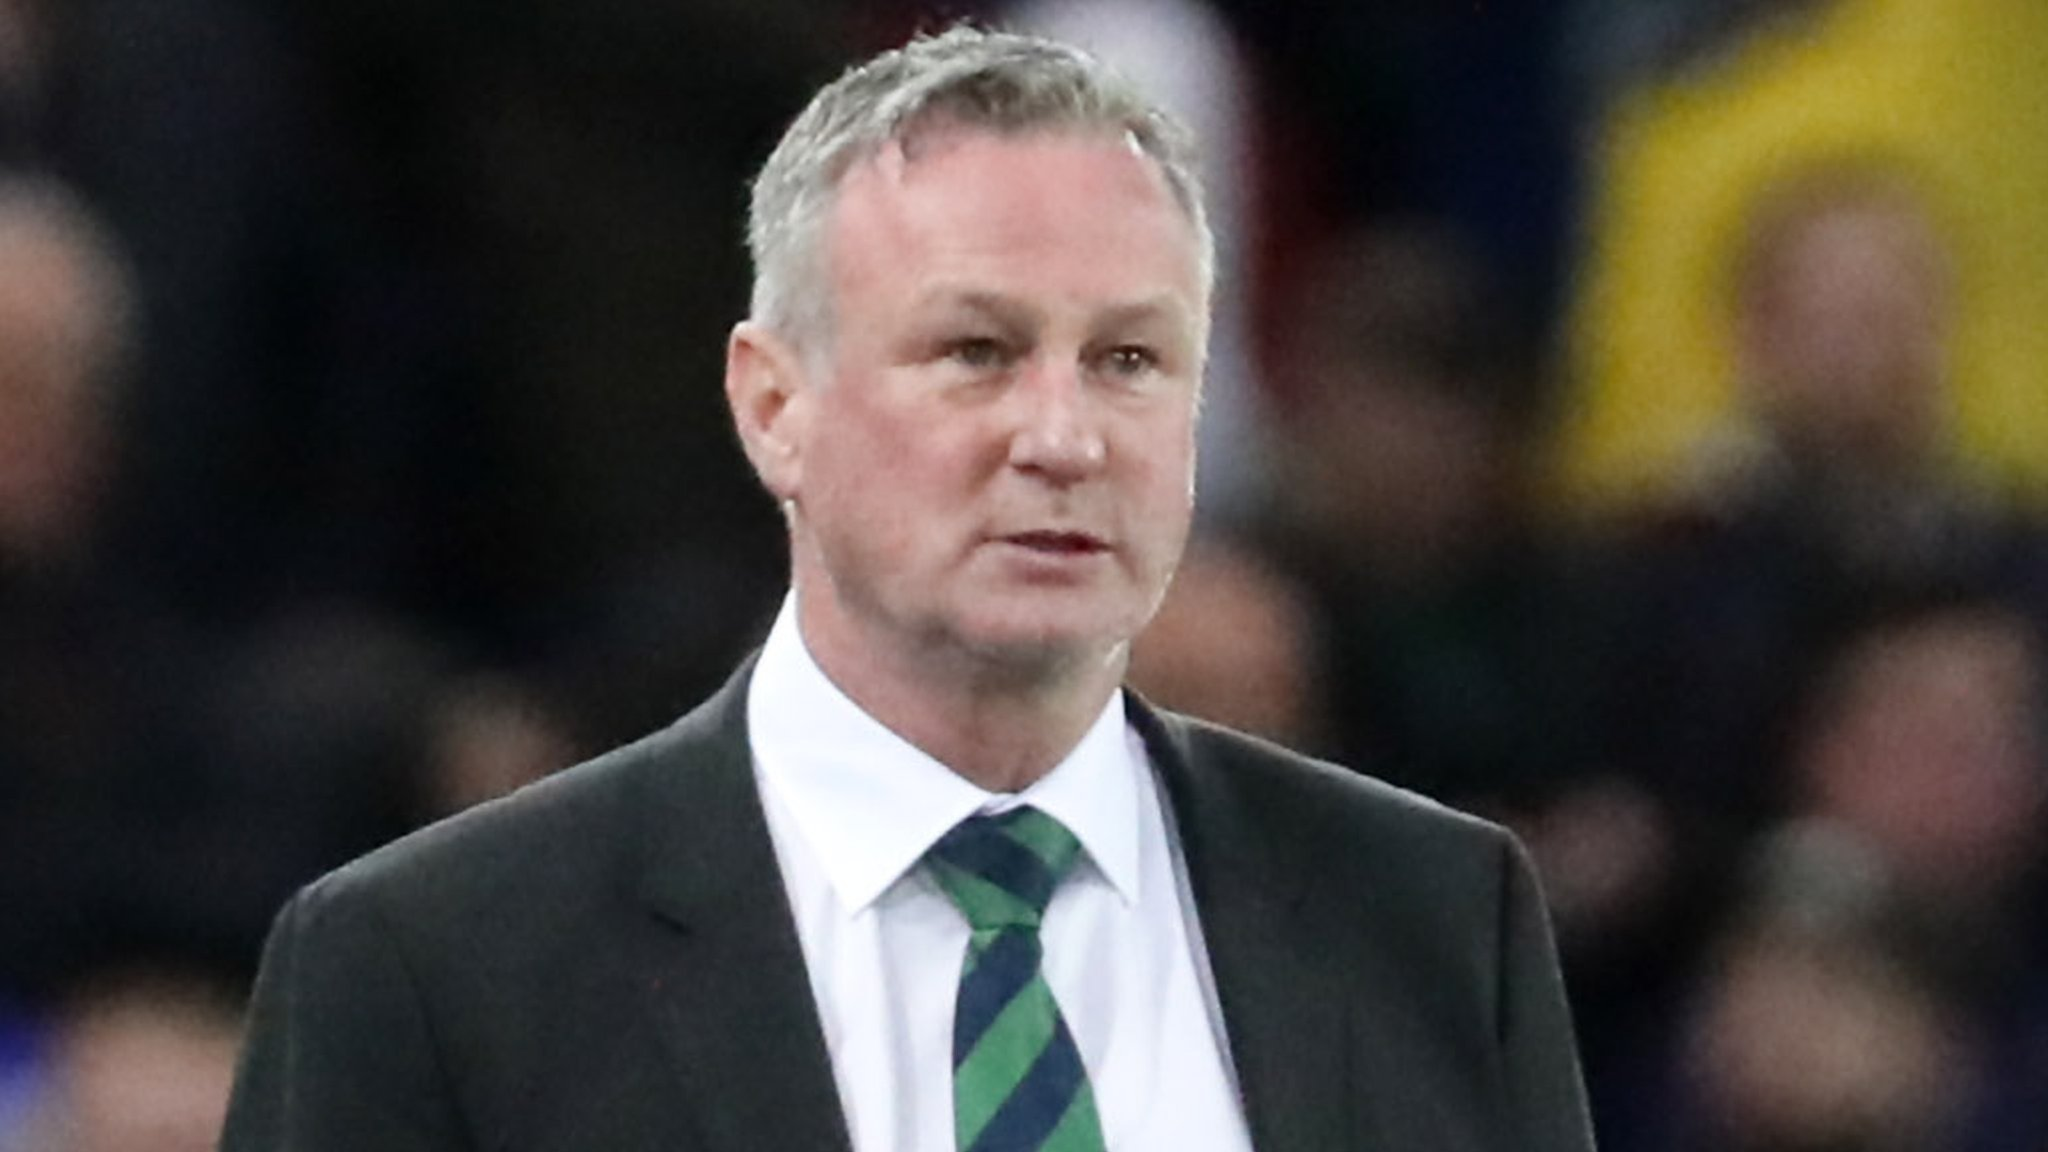 Euro 2020 qualifiers: 'We can improve' says Northern Ireland boss Michael O'Neill